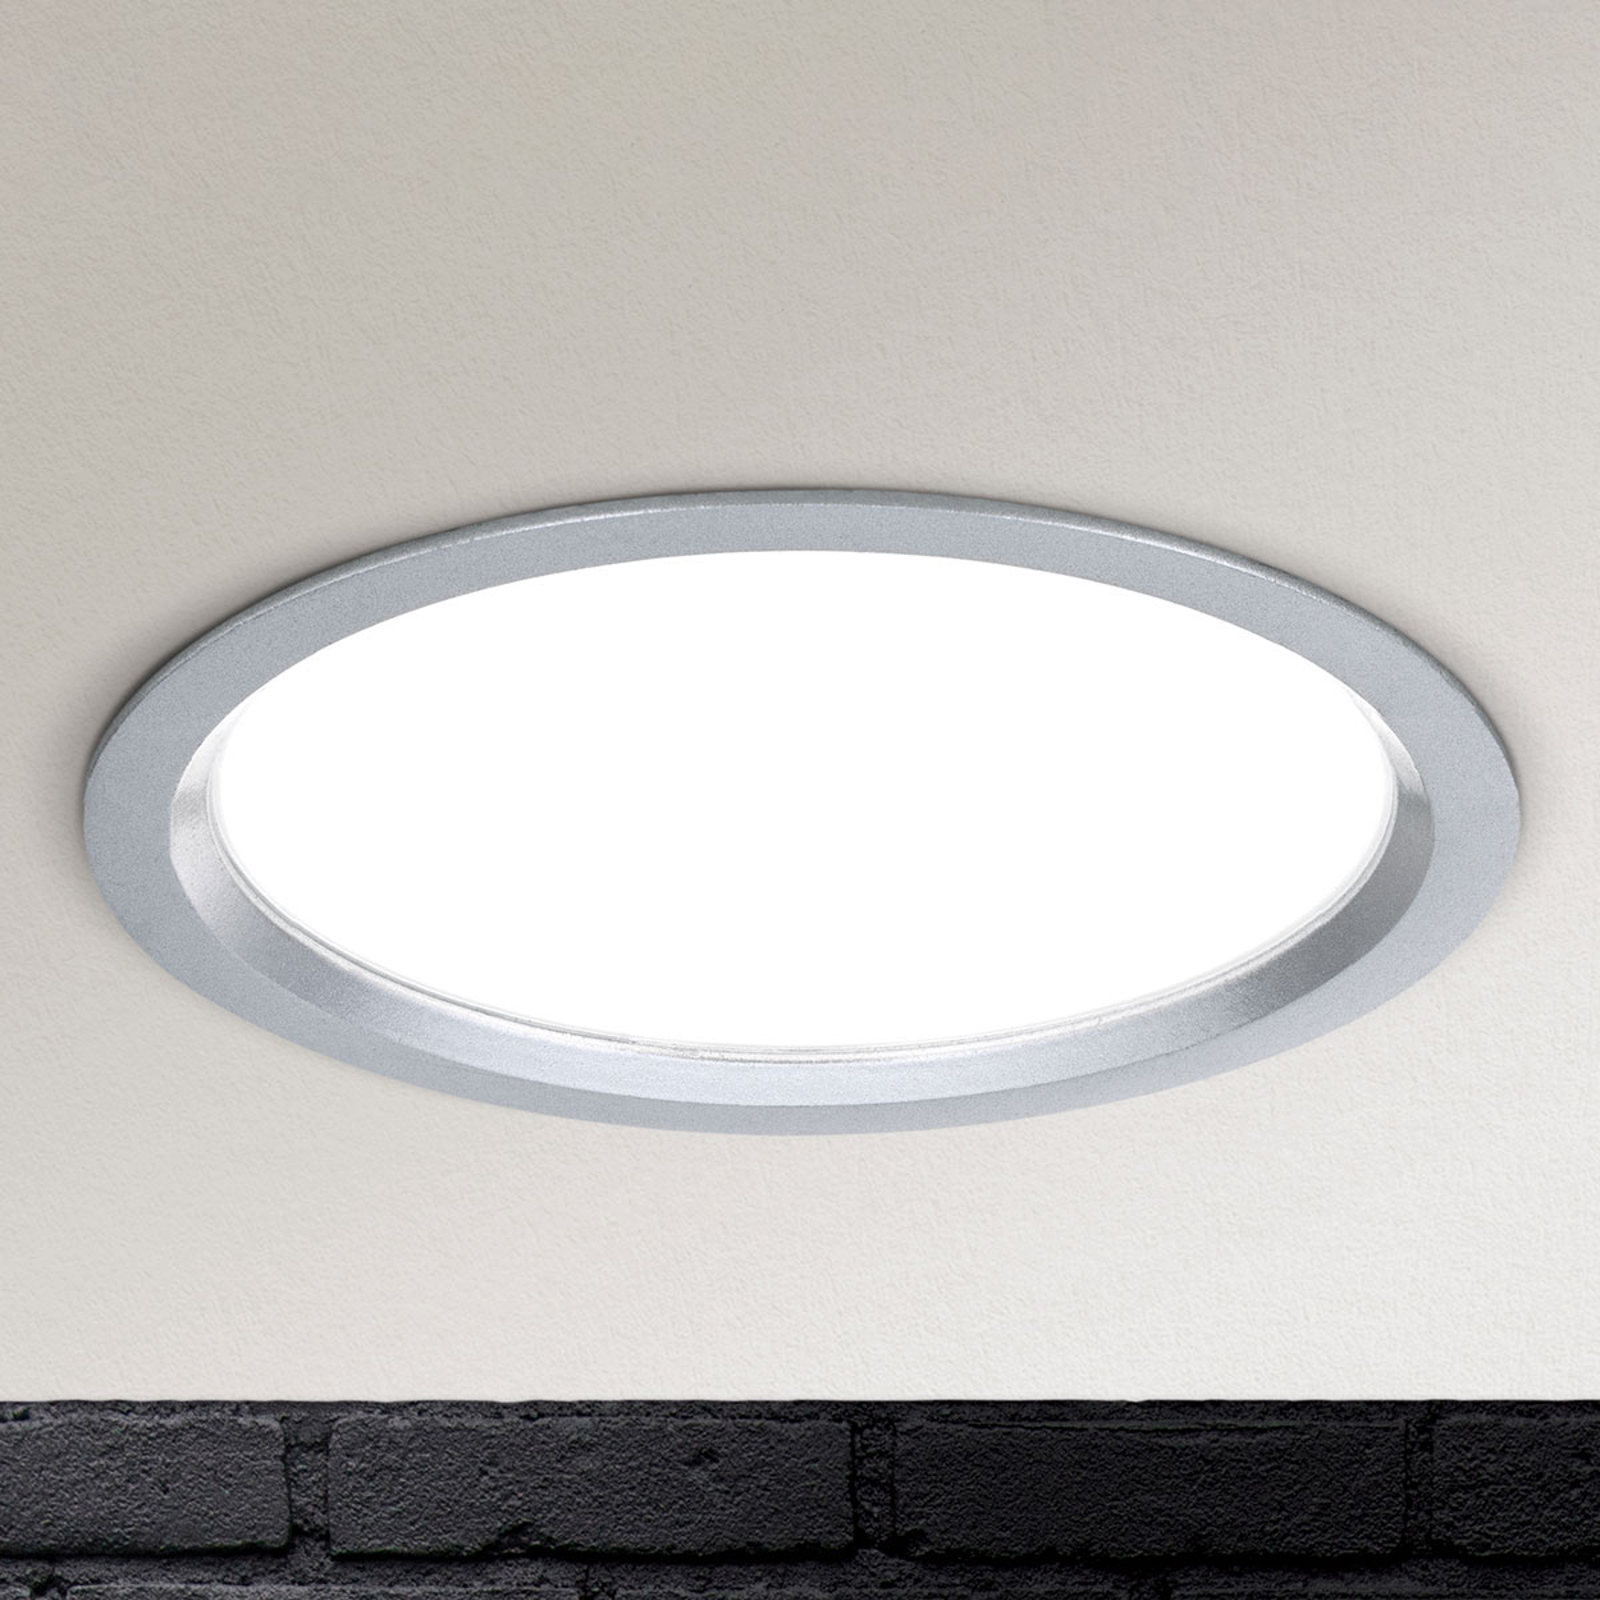 LED-downlight Spock dimbar Ø 17 cm sølv